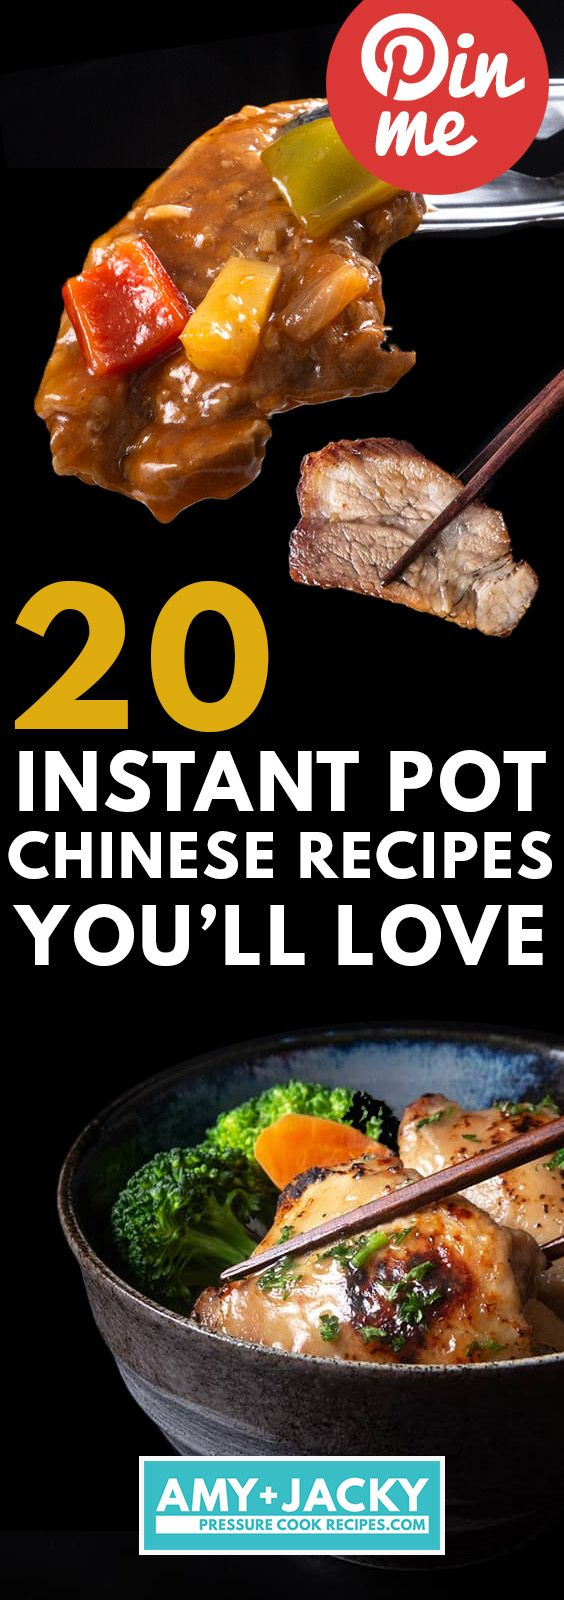 20 Instant Pot Favorite Chinese Takeout Recipes You'll Love images